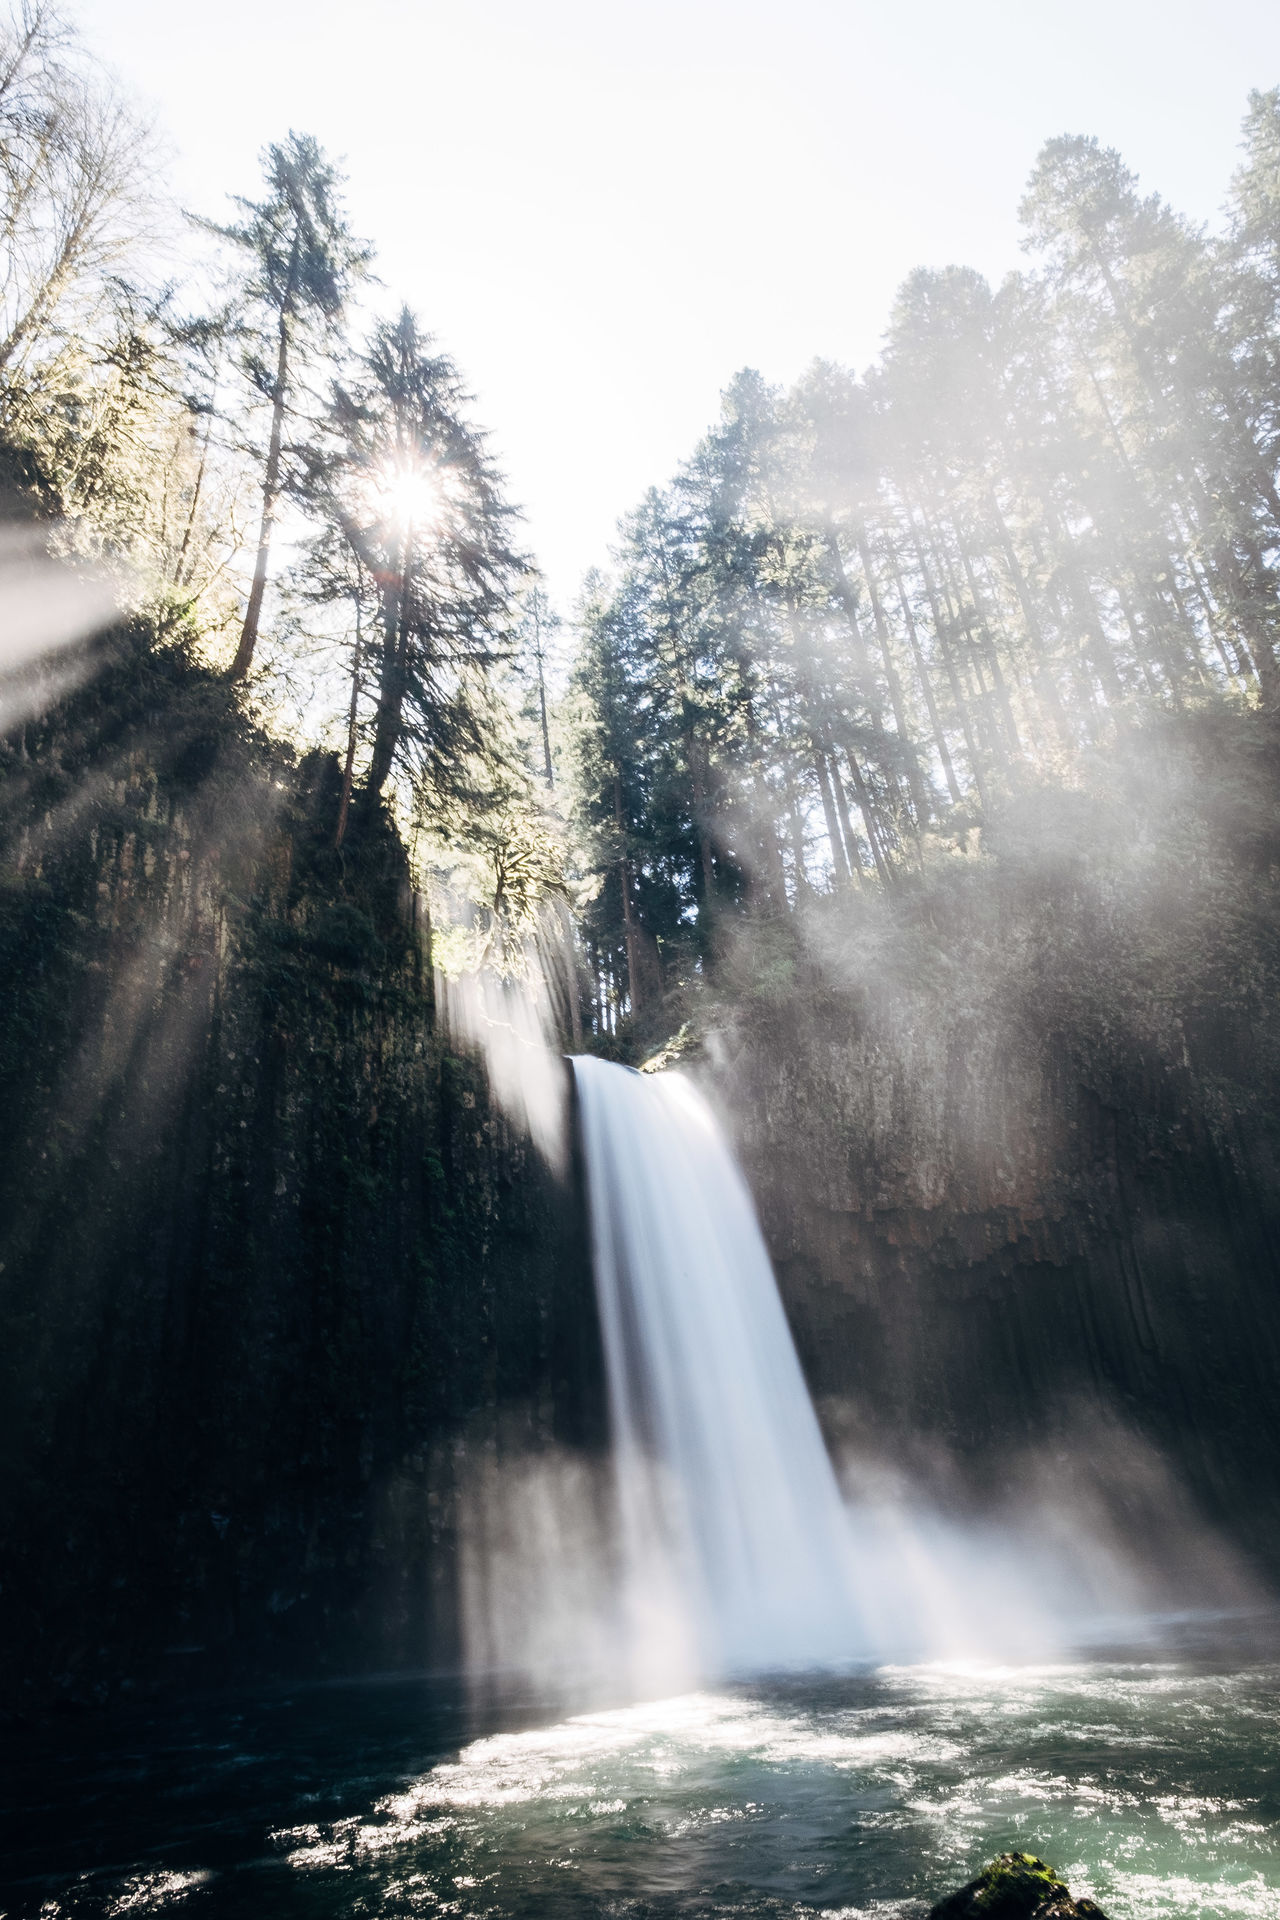 Ray Water Motion Waterfall Tree Nature Outdoors Beauty In Nature No People Power In Nature Scenics Tranquil Scene Morning The Great Outdoors - 2017 EyeEm Awards Travel Destinations Oregon Tranquility Water